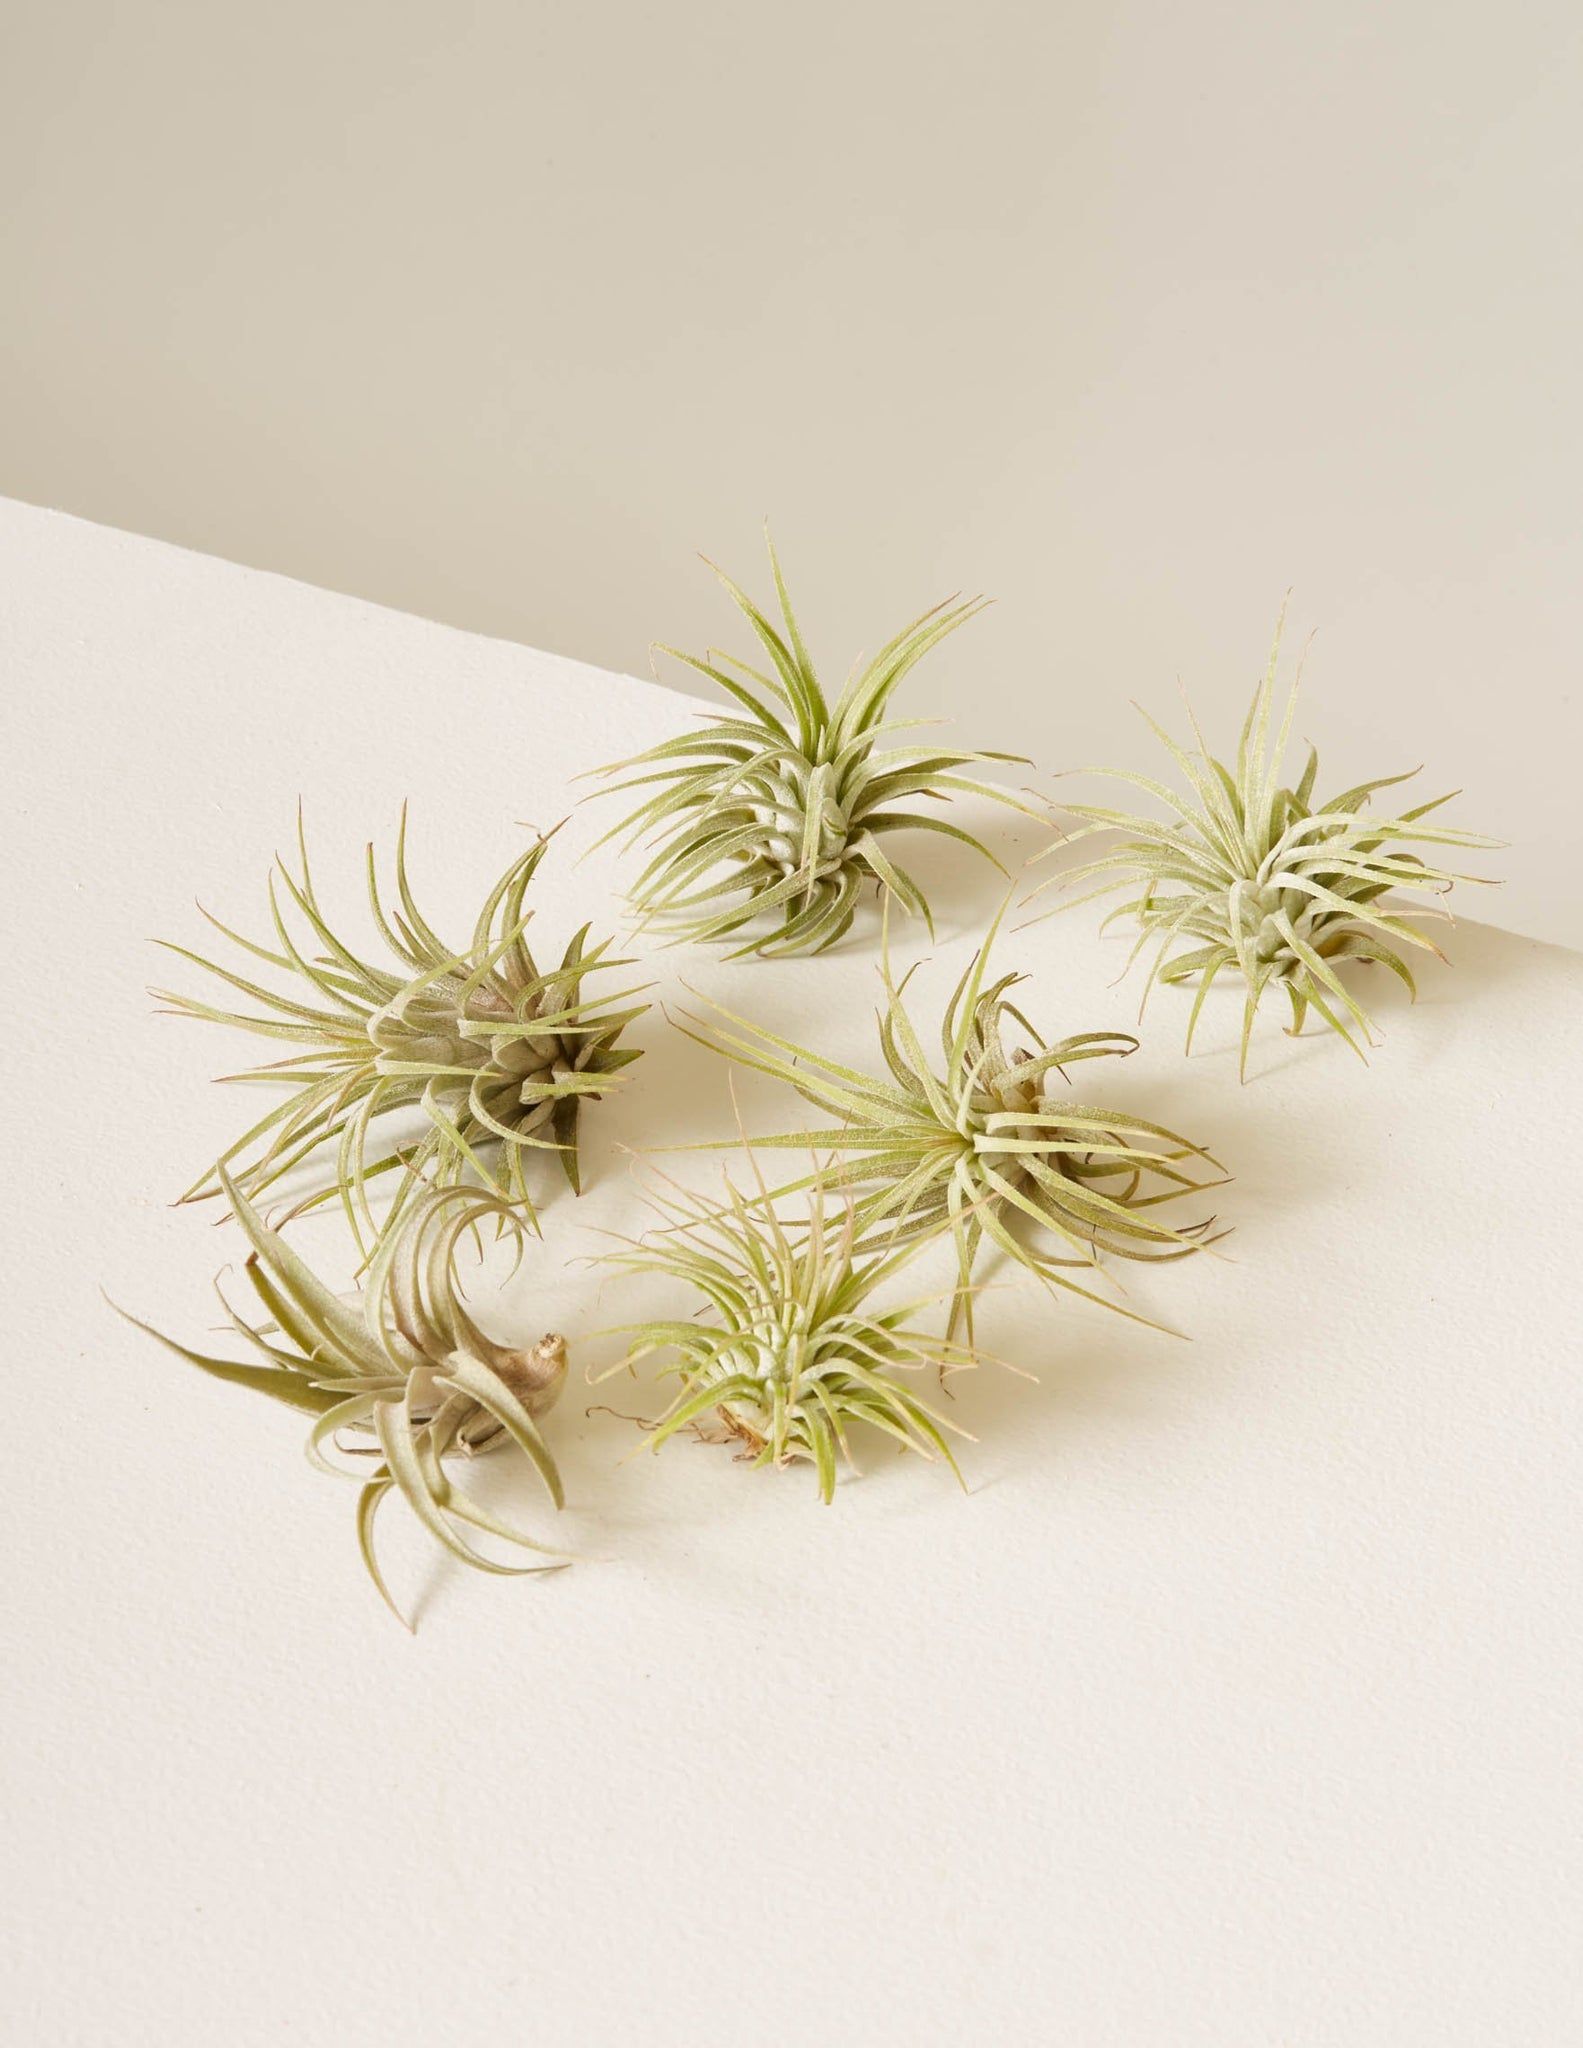 Six Assorted Air Plants - The Sill | Indoor Plants